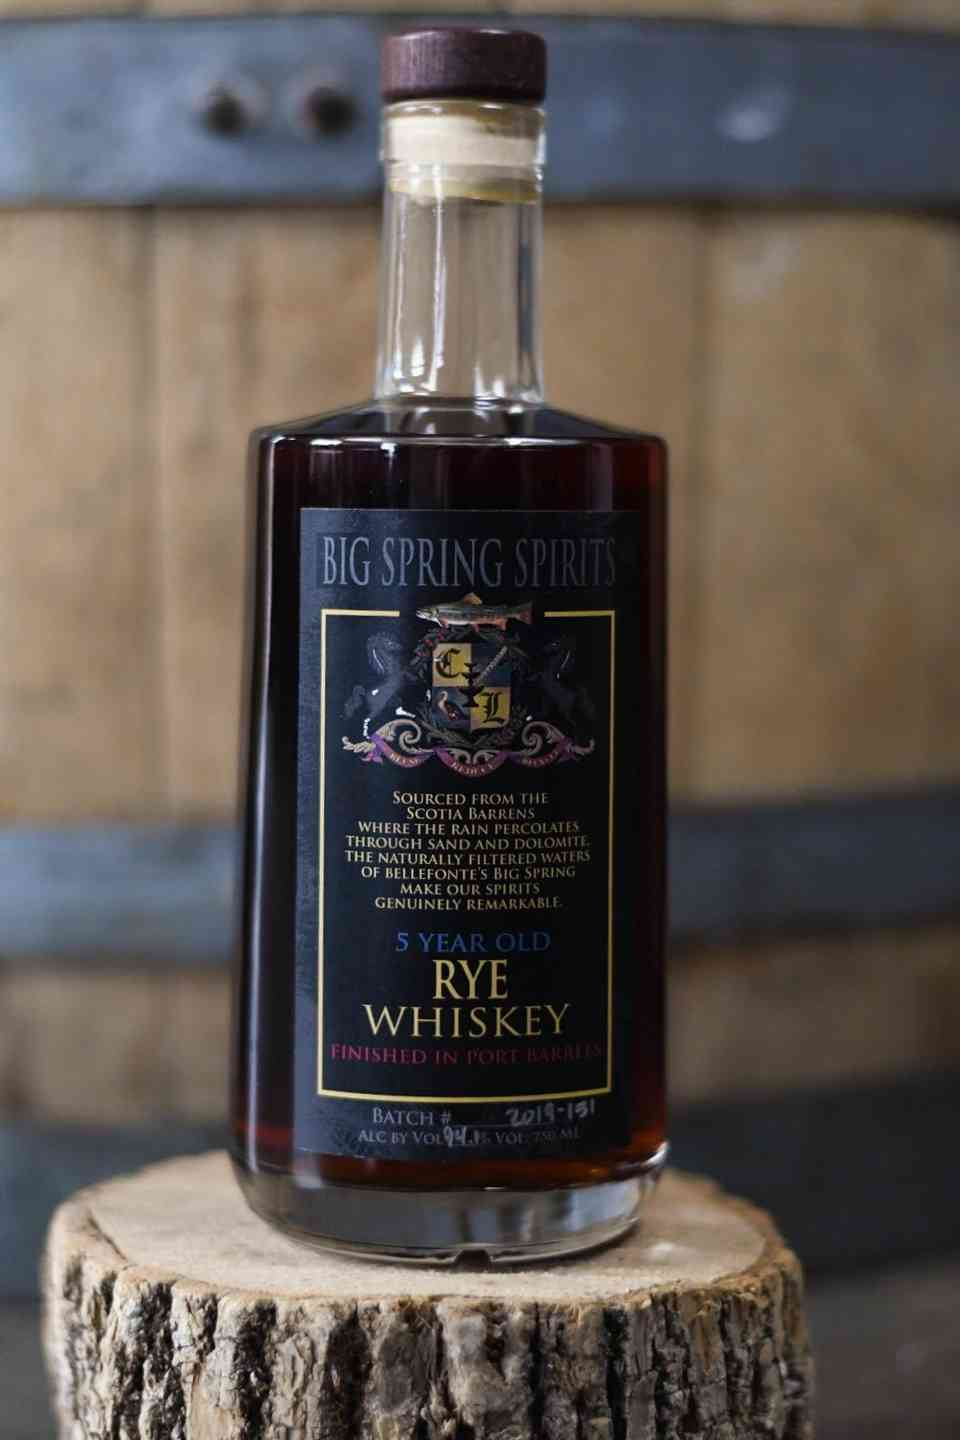 Port-Finished Aged Rye Whiskey